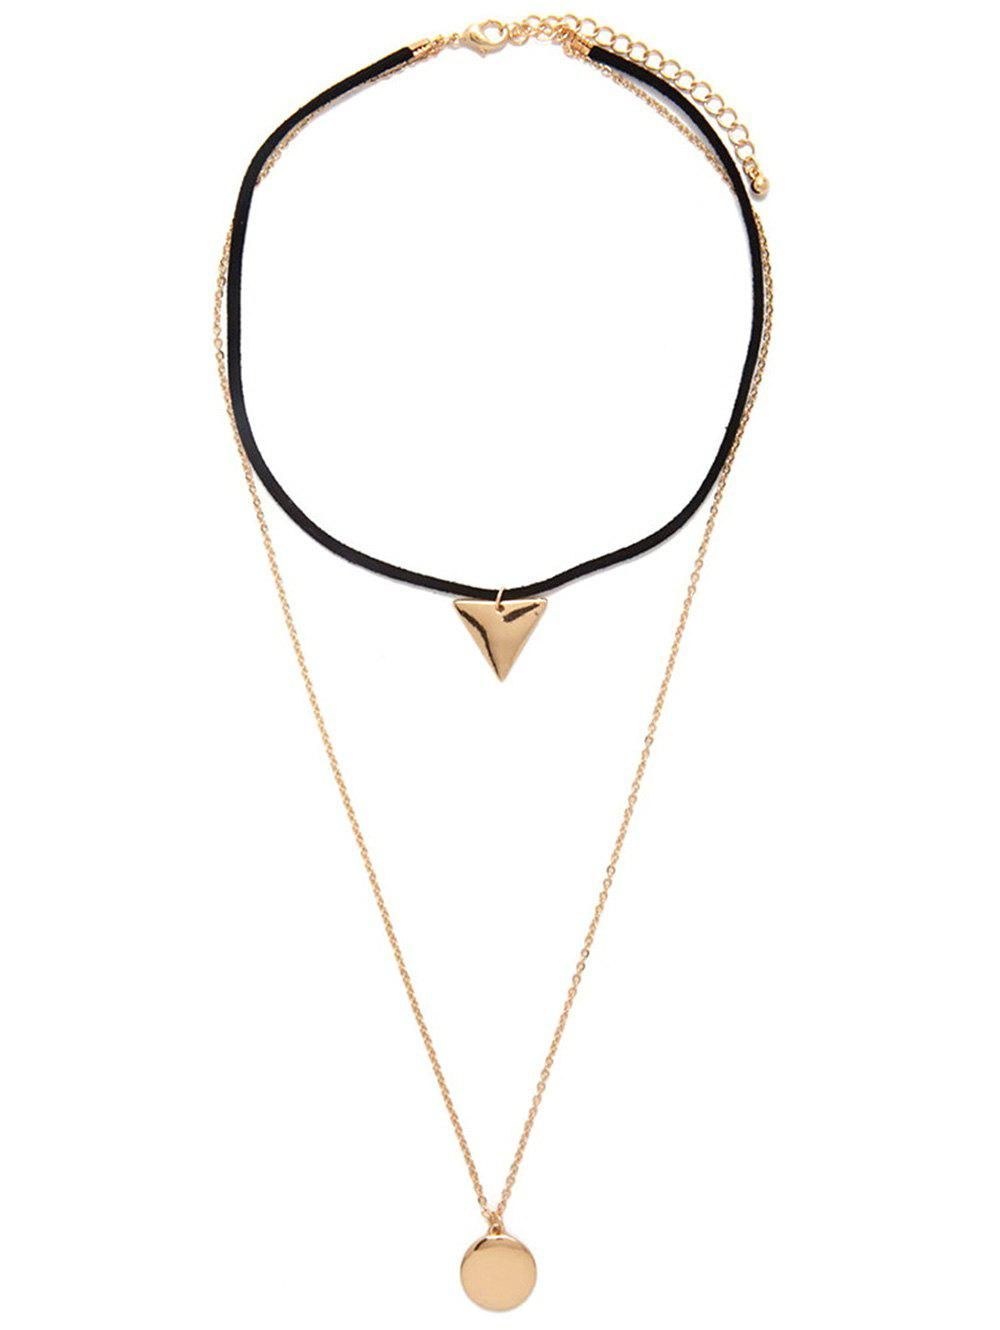 Multilayered Geometric Charm Choker Necklace -  GOLDEN